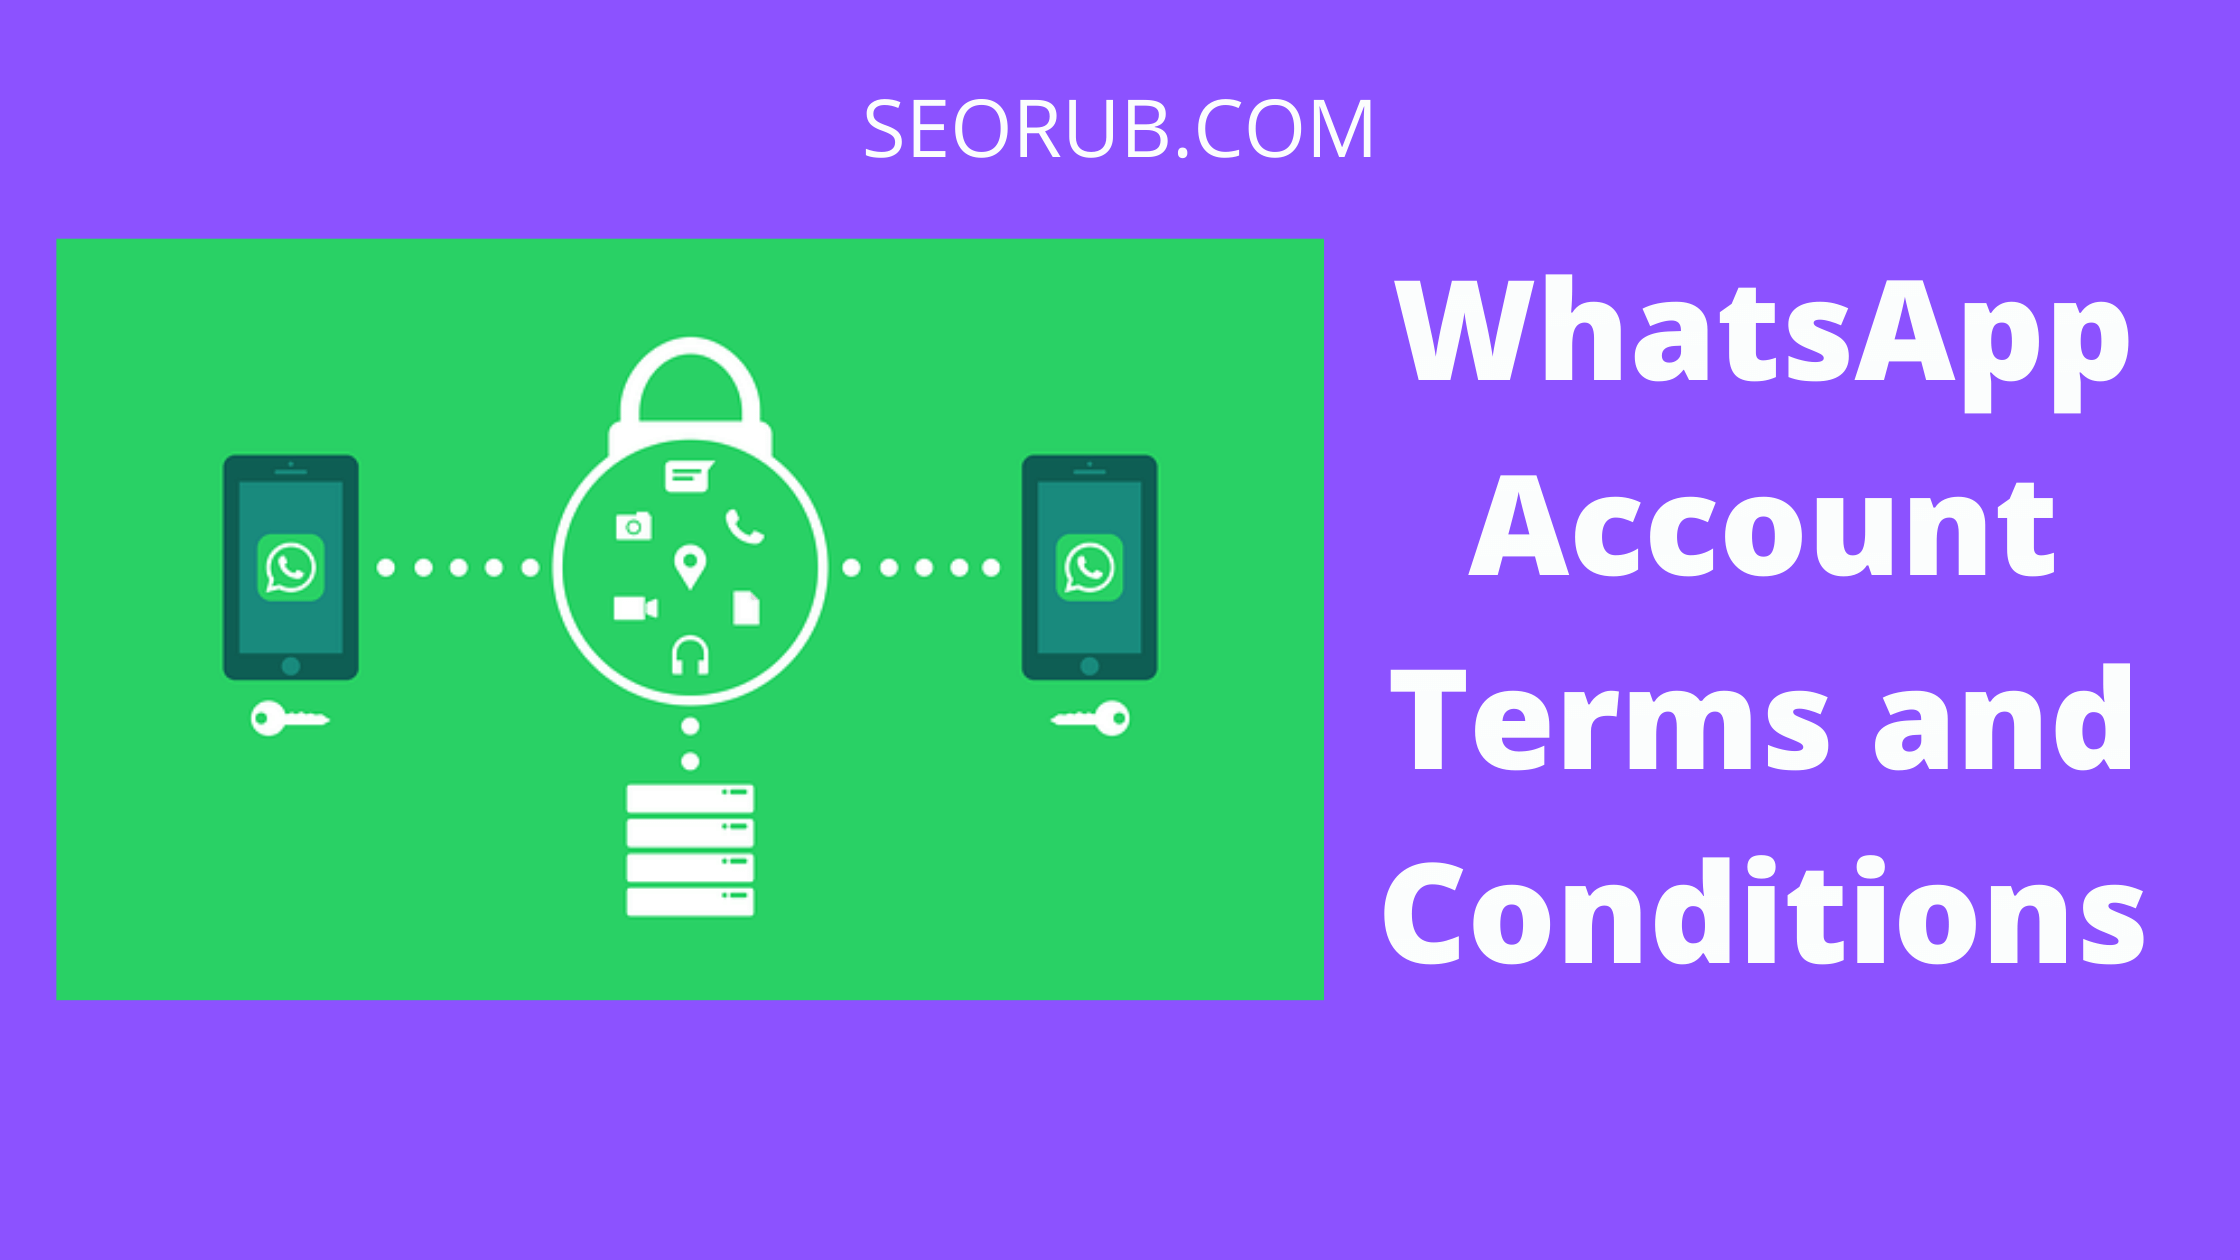 WhatsApp account terms and conditions